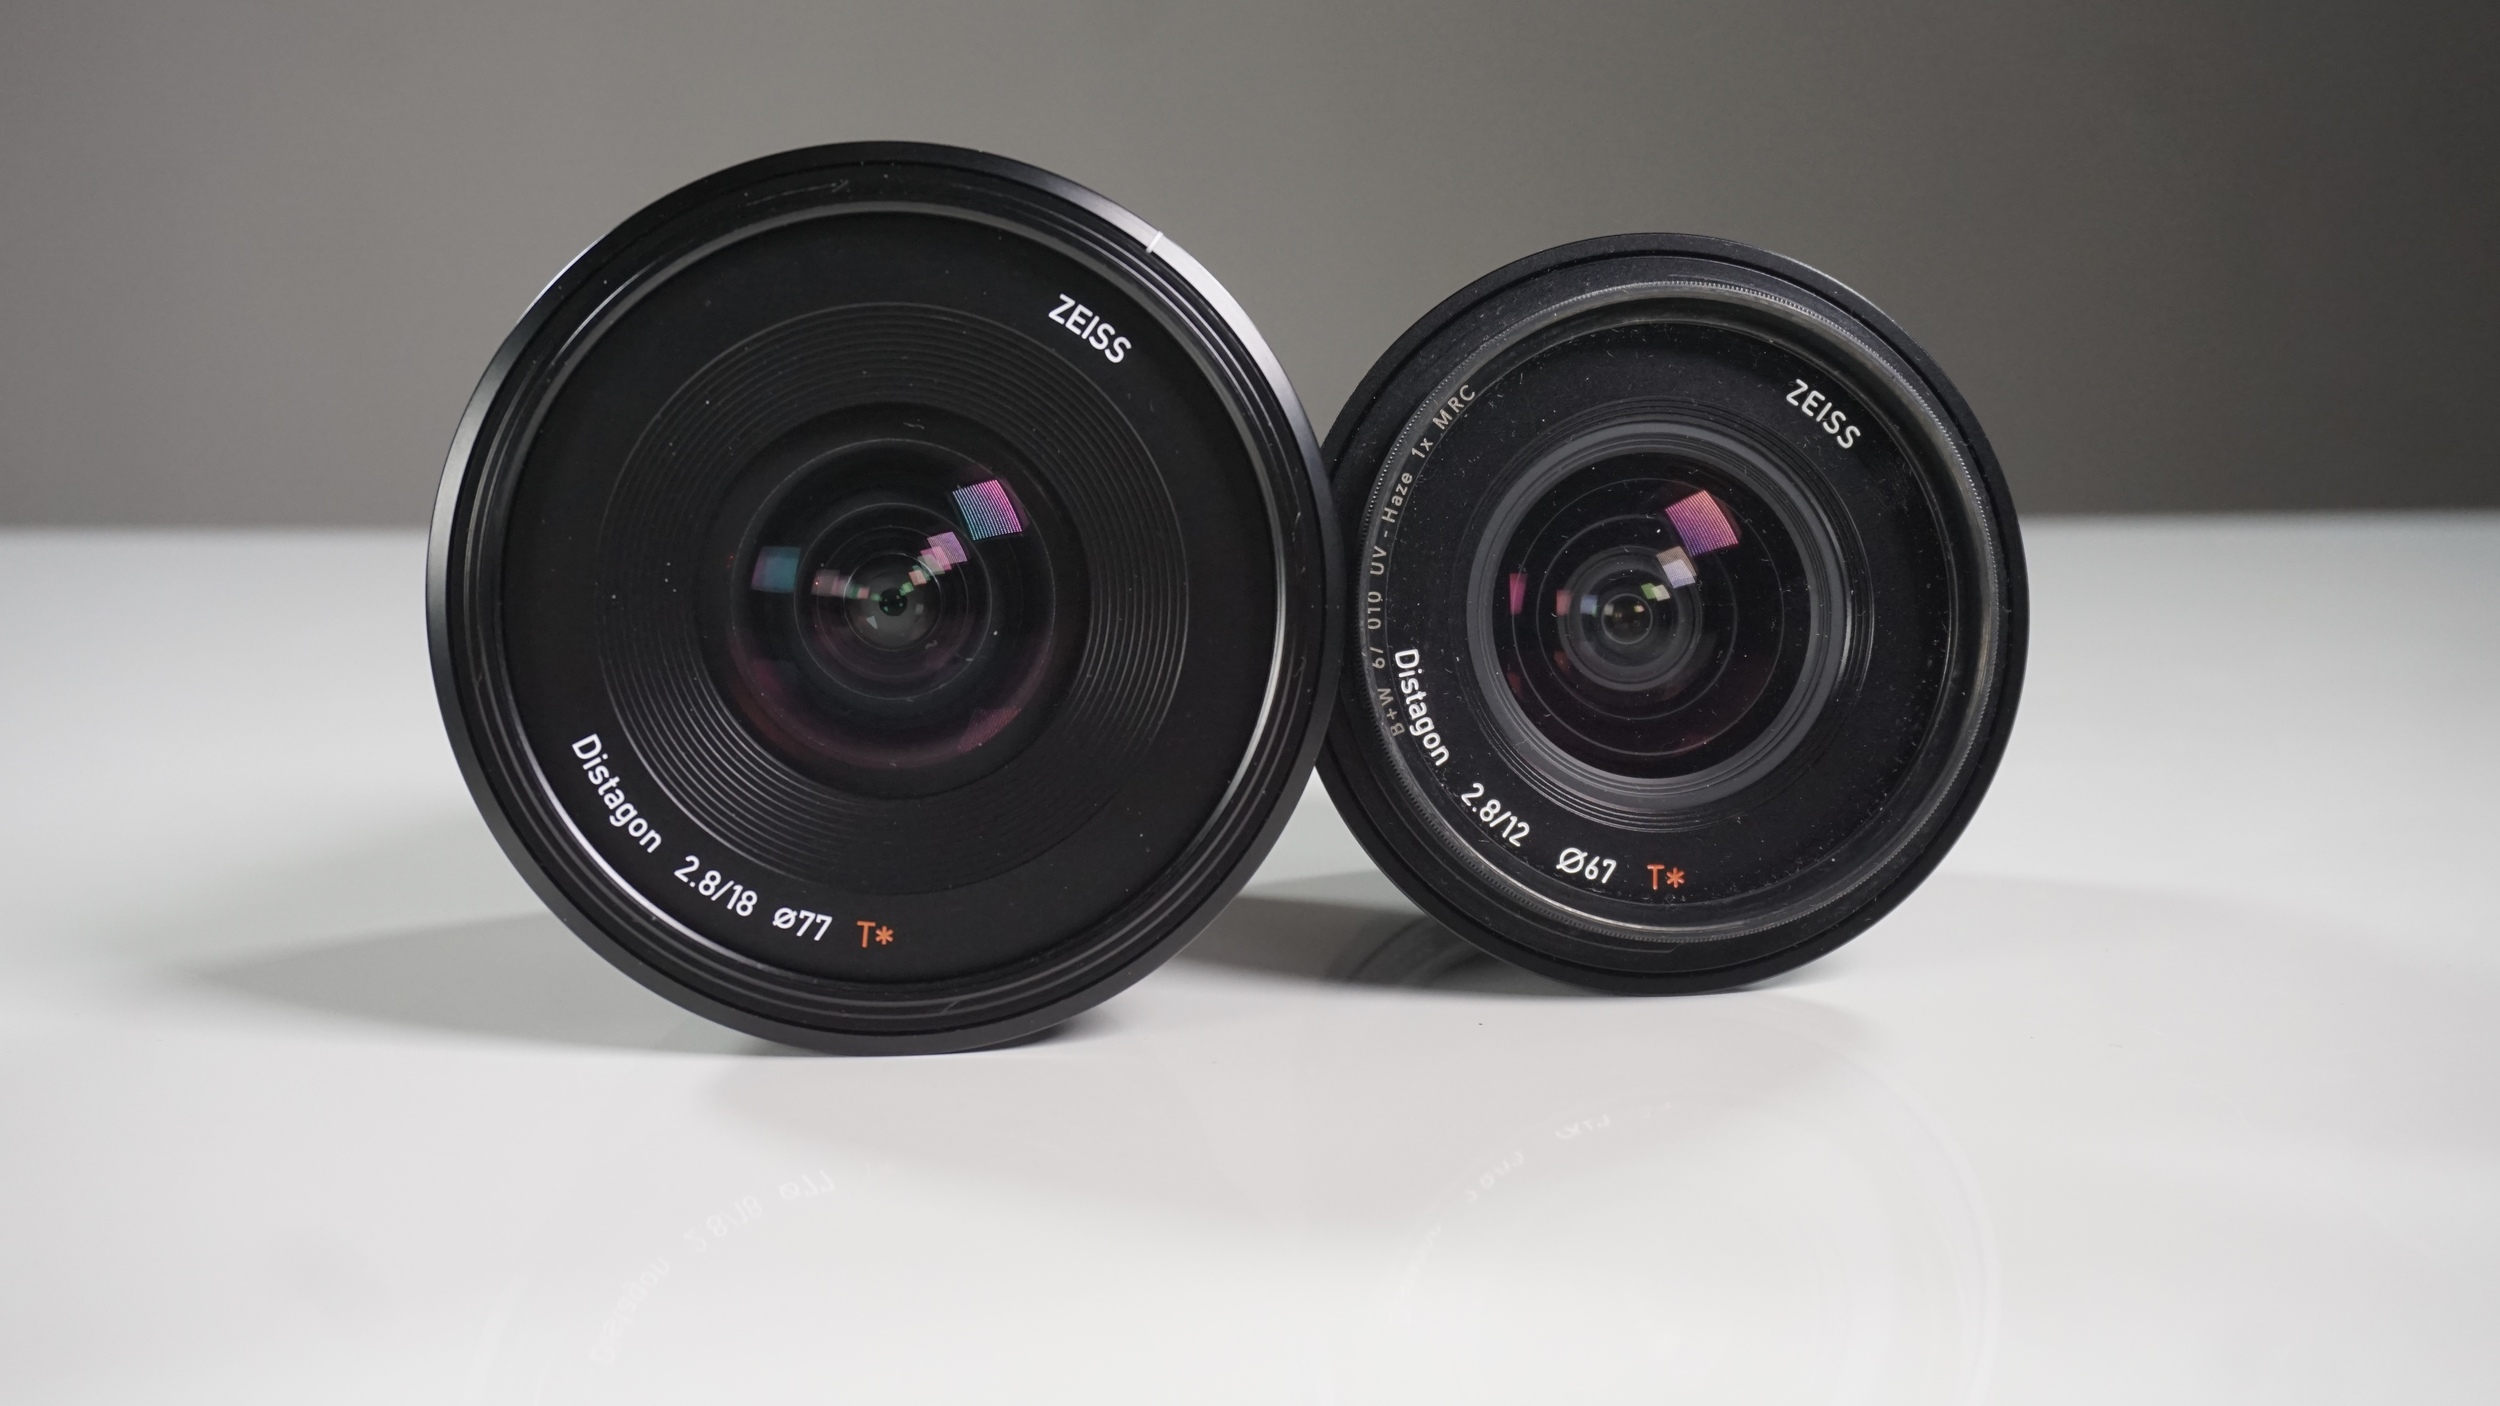 Both lenses are also surprisingly light. Autofocus is quick and quiet.